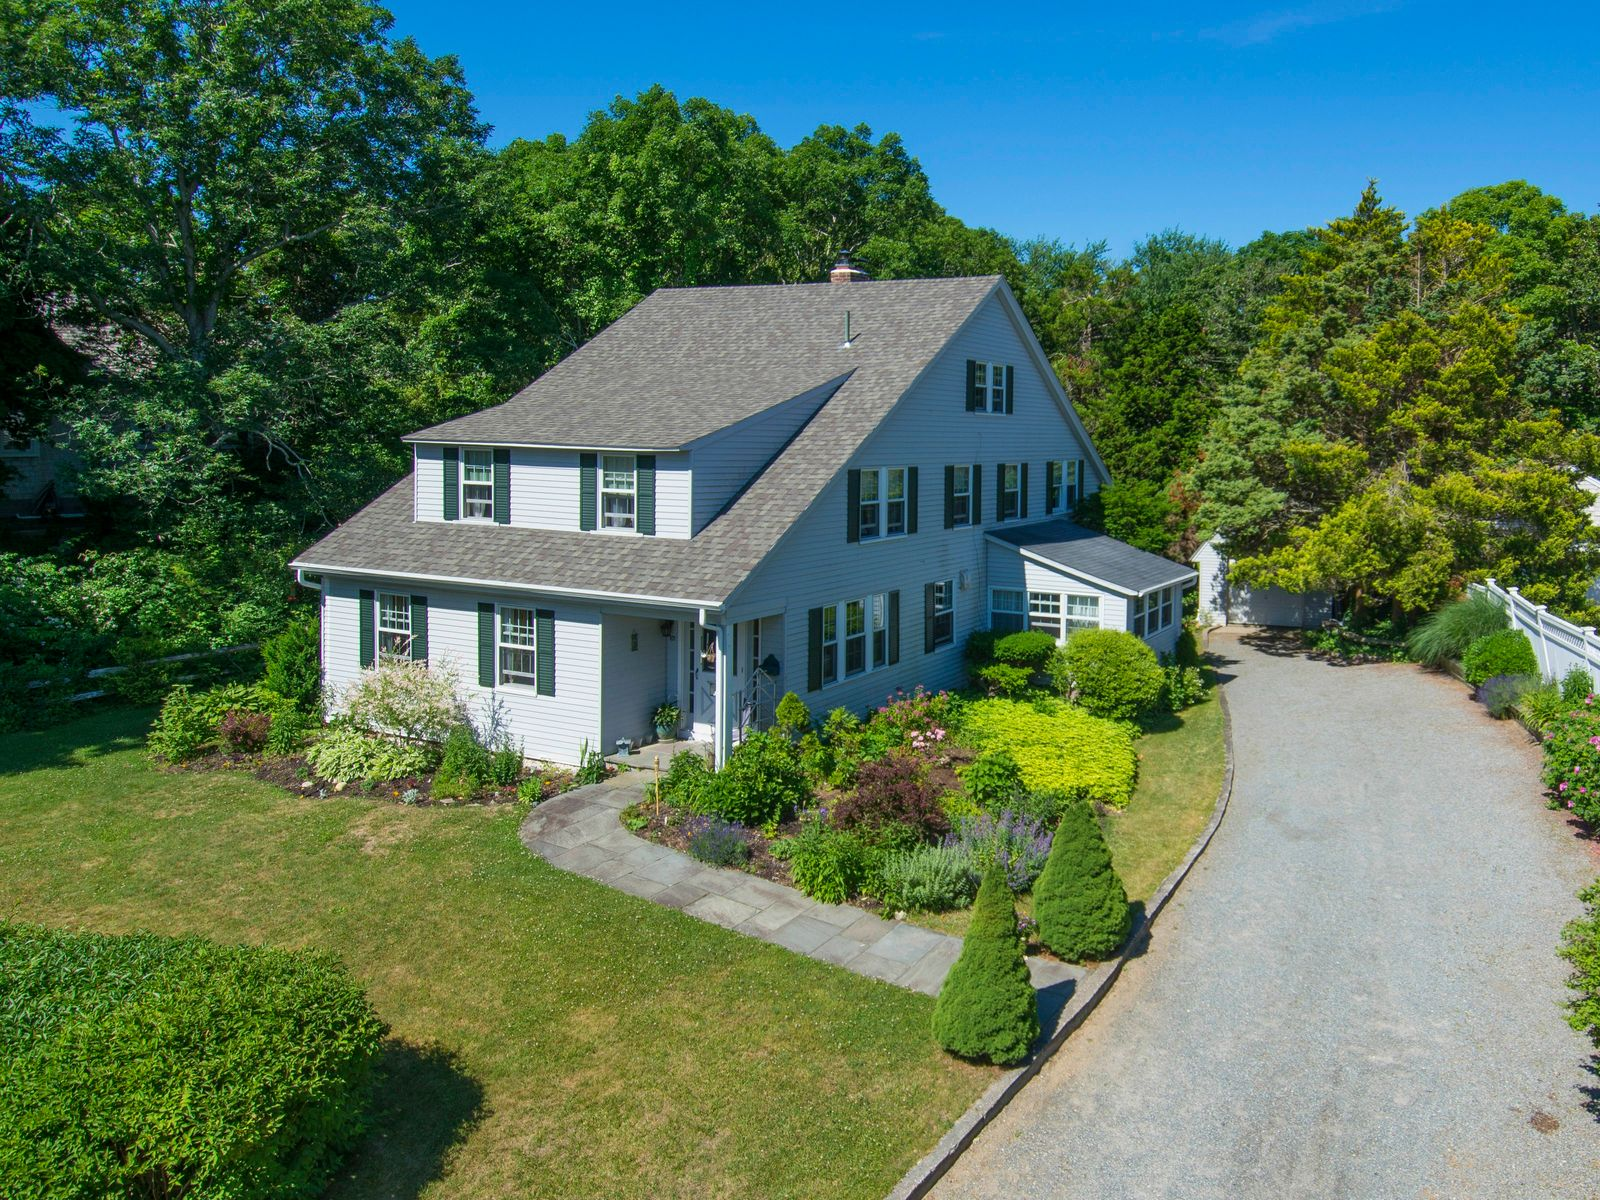 Entertaining Dream with Seasonal Views, Hyannis Port MA Single Family Home - Cape Cod Real Estate